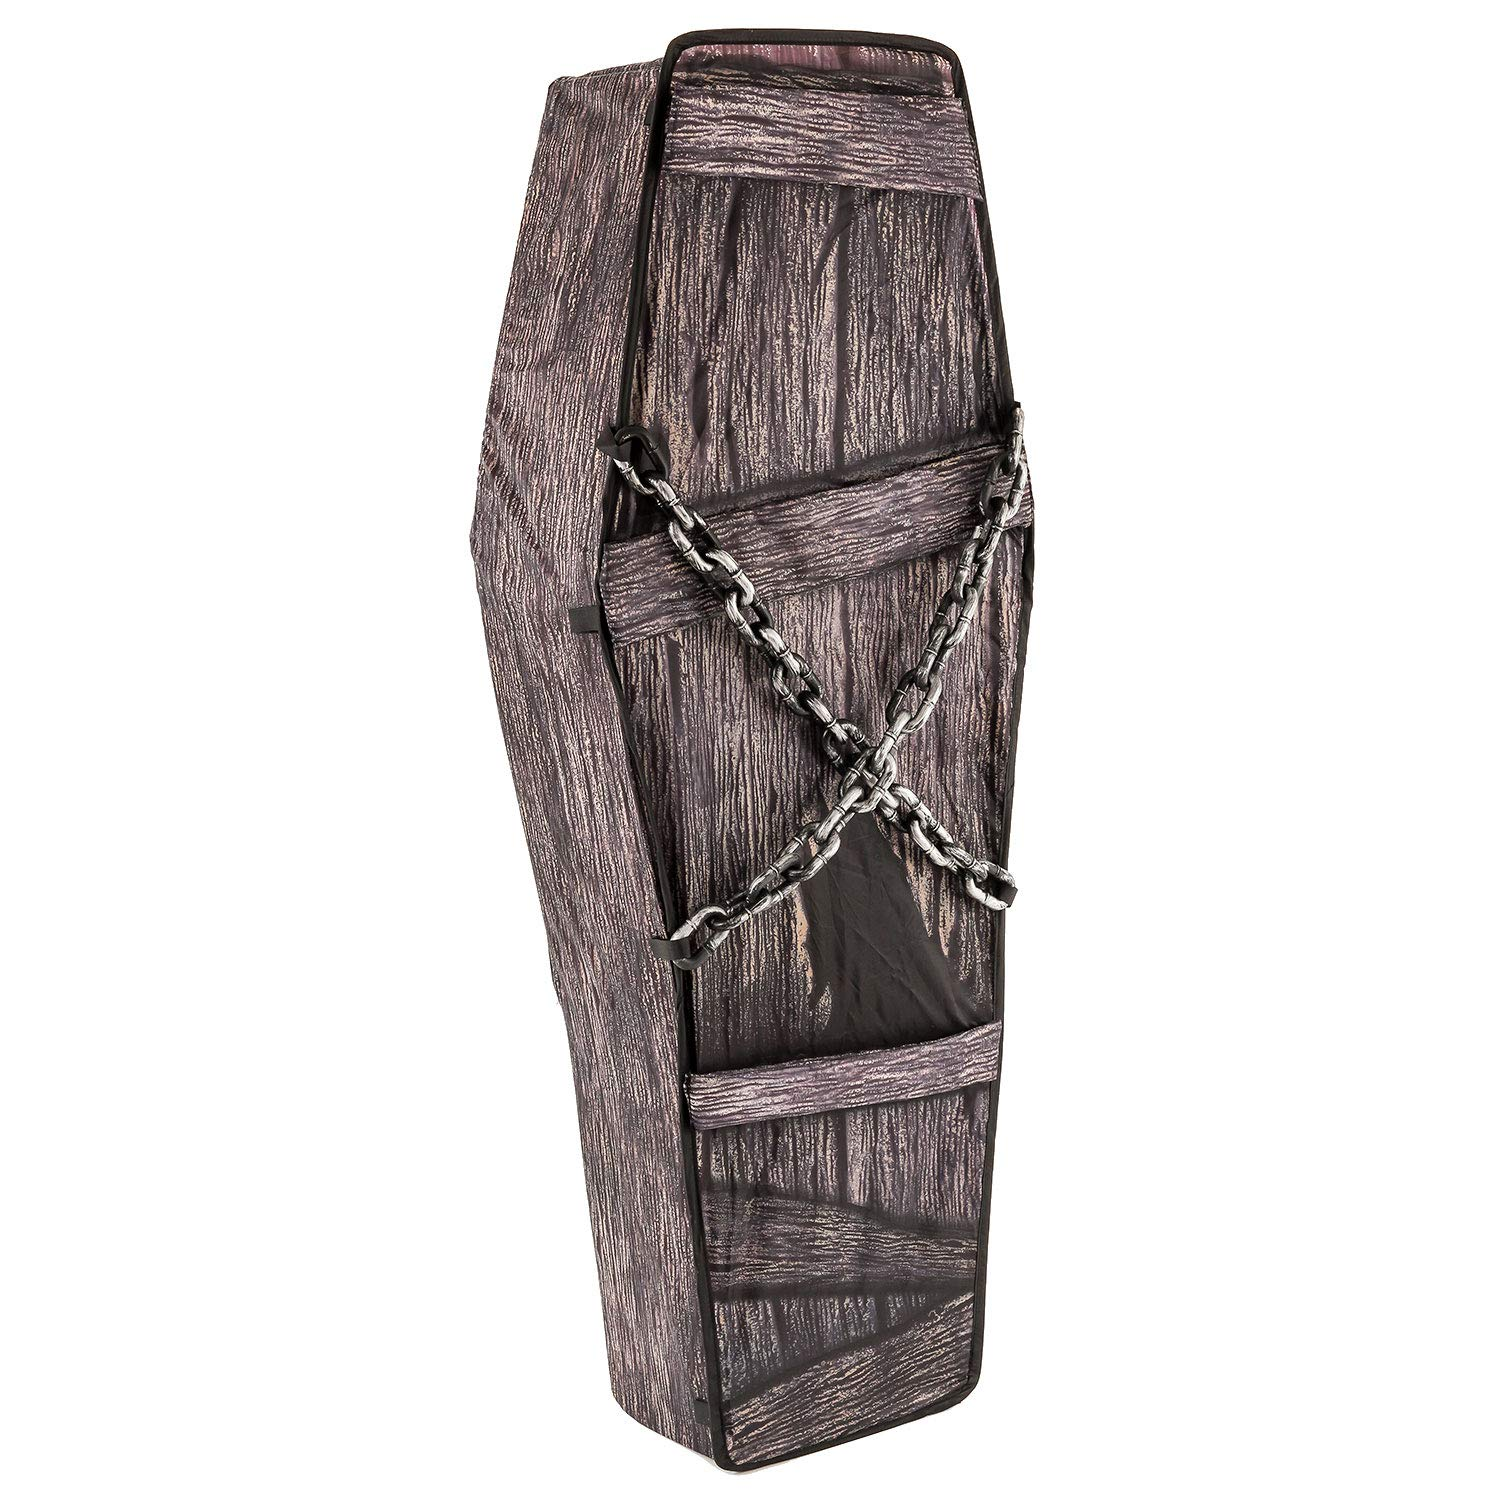 Halloween Haunters 5 Foot Instant Pop-Up Black Coffin with Chains Prop Decoration - Creepy Collapsible Fabric and Wire Casket - Gothic Graveyard Haunted House Party Display